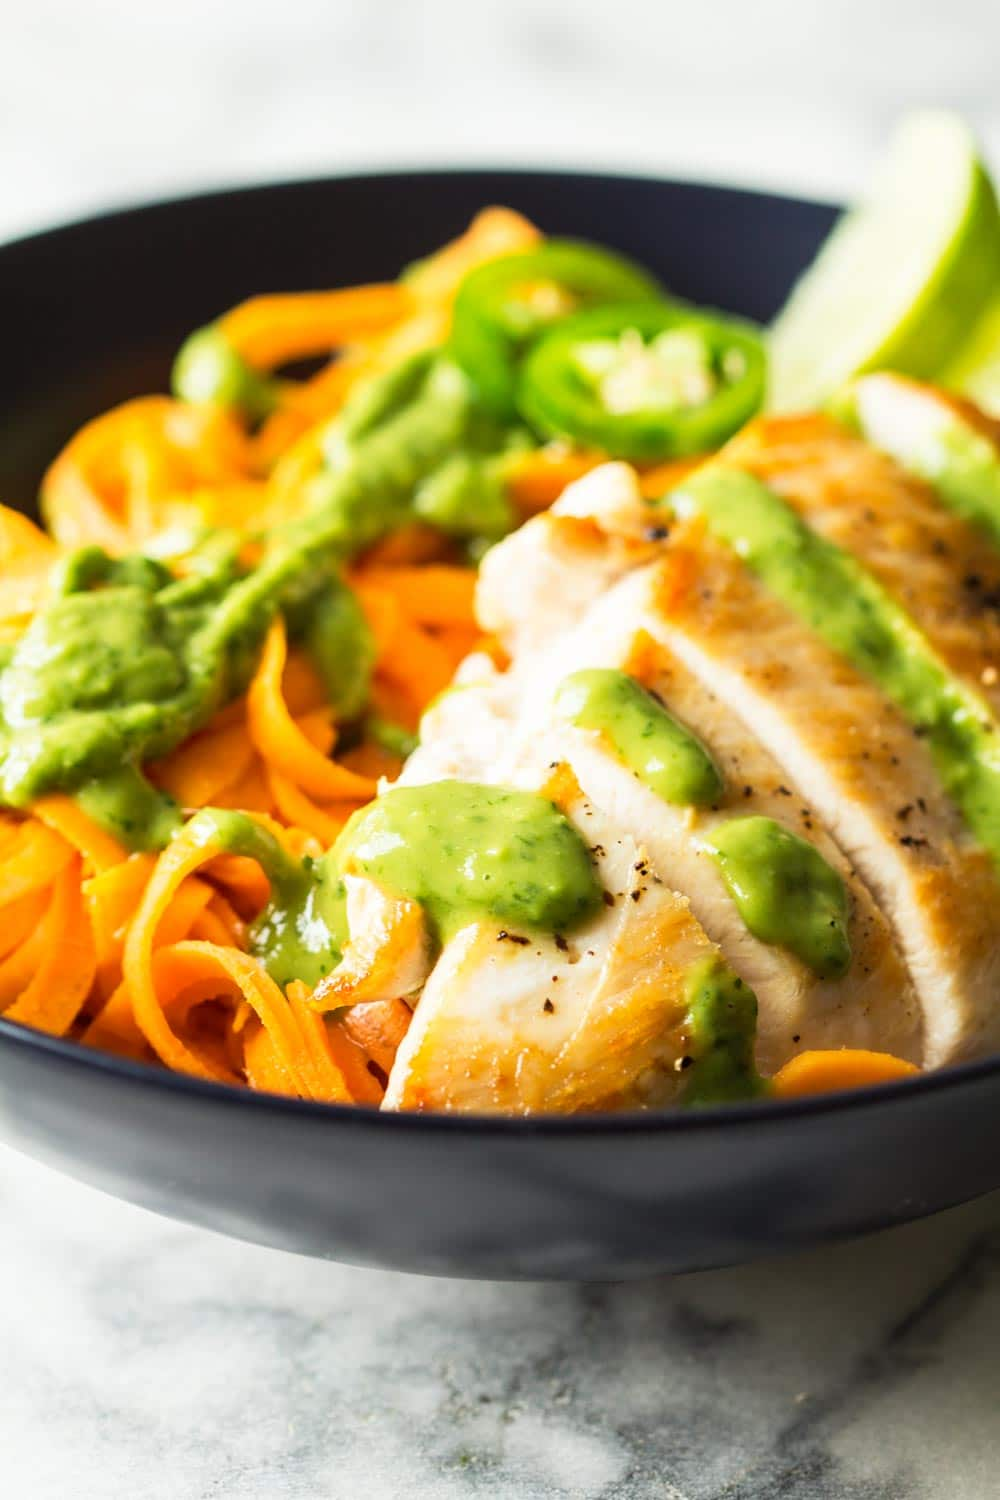 Yes, I claim that my Sweet Potato Noodles with Chicken and creamy Avocado Cilantro Sauce are THE BEST Sweet Potato Noodles Recipe you will try in your life!